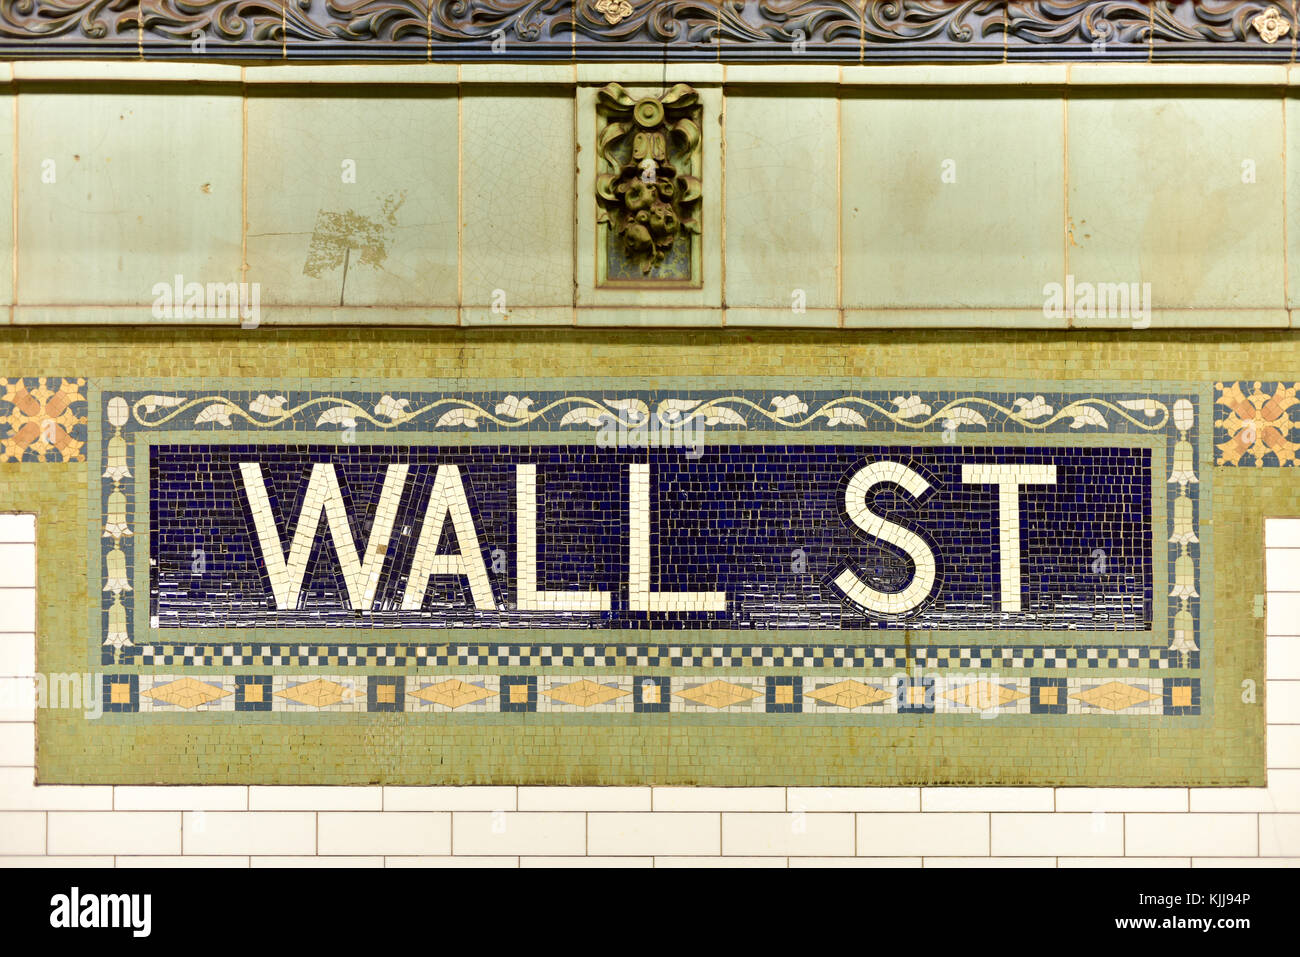 Wall street subway sign tile pattern in new york city manhattan wall street subway sign tile pattern in new york city manhattan station dailygadgetfo Choice Image